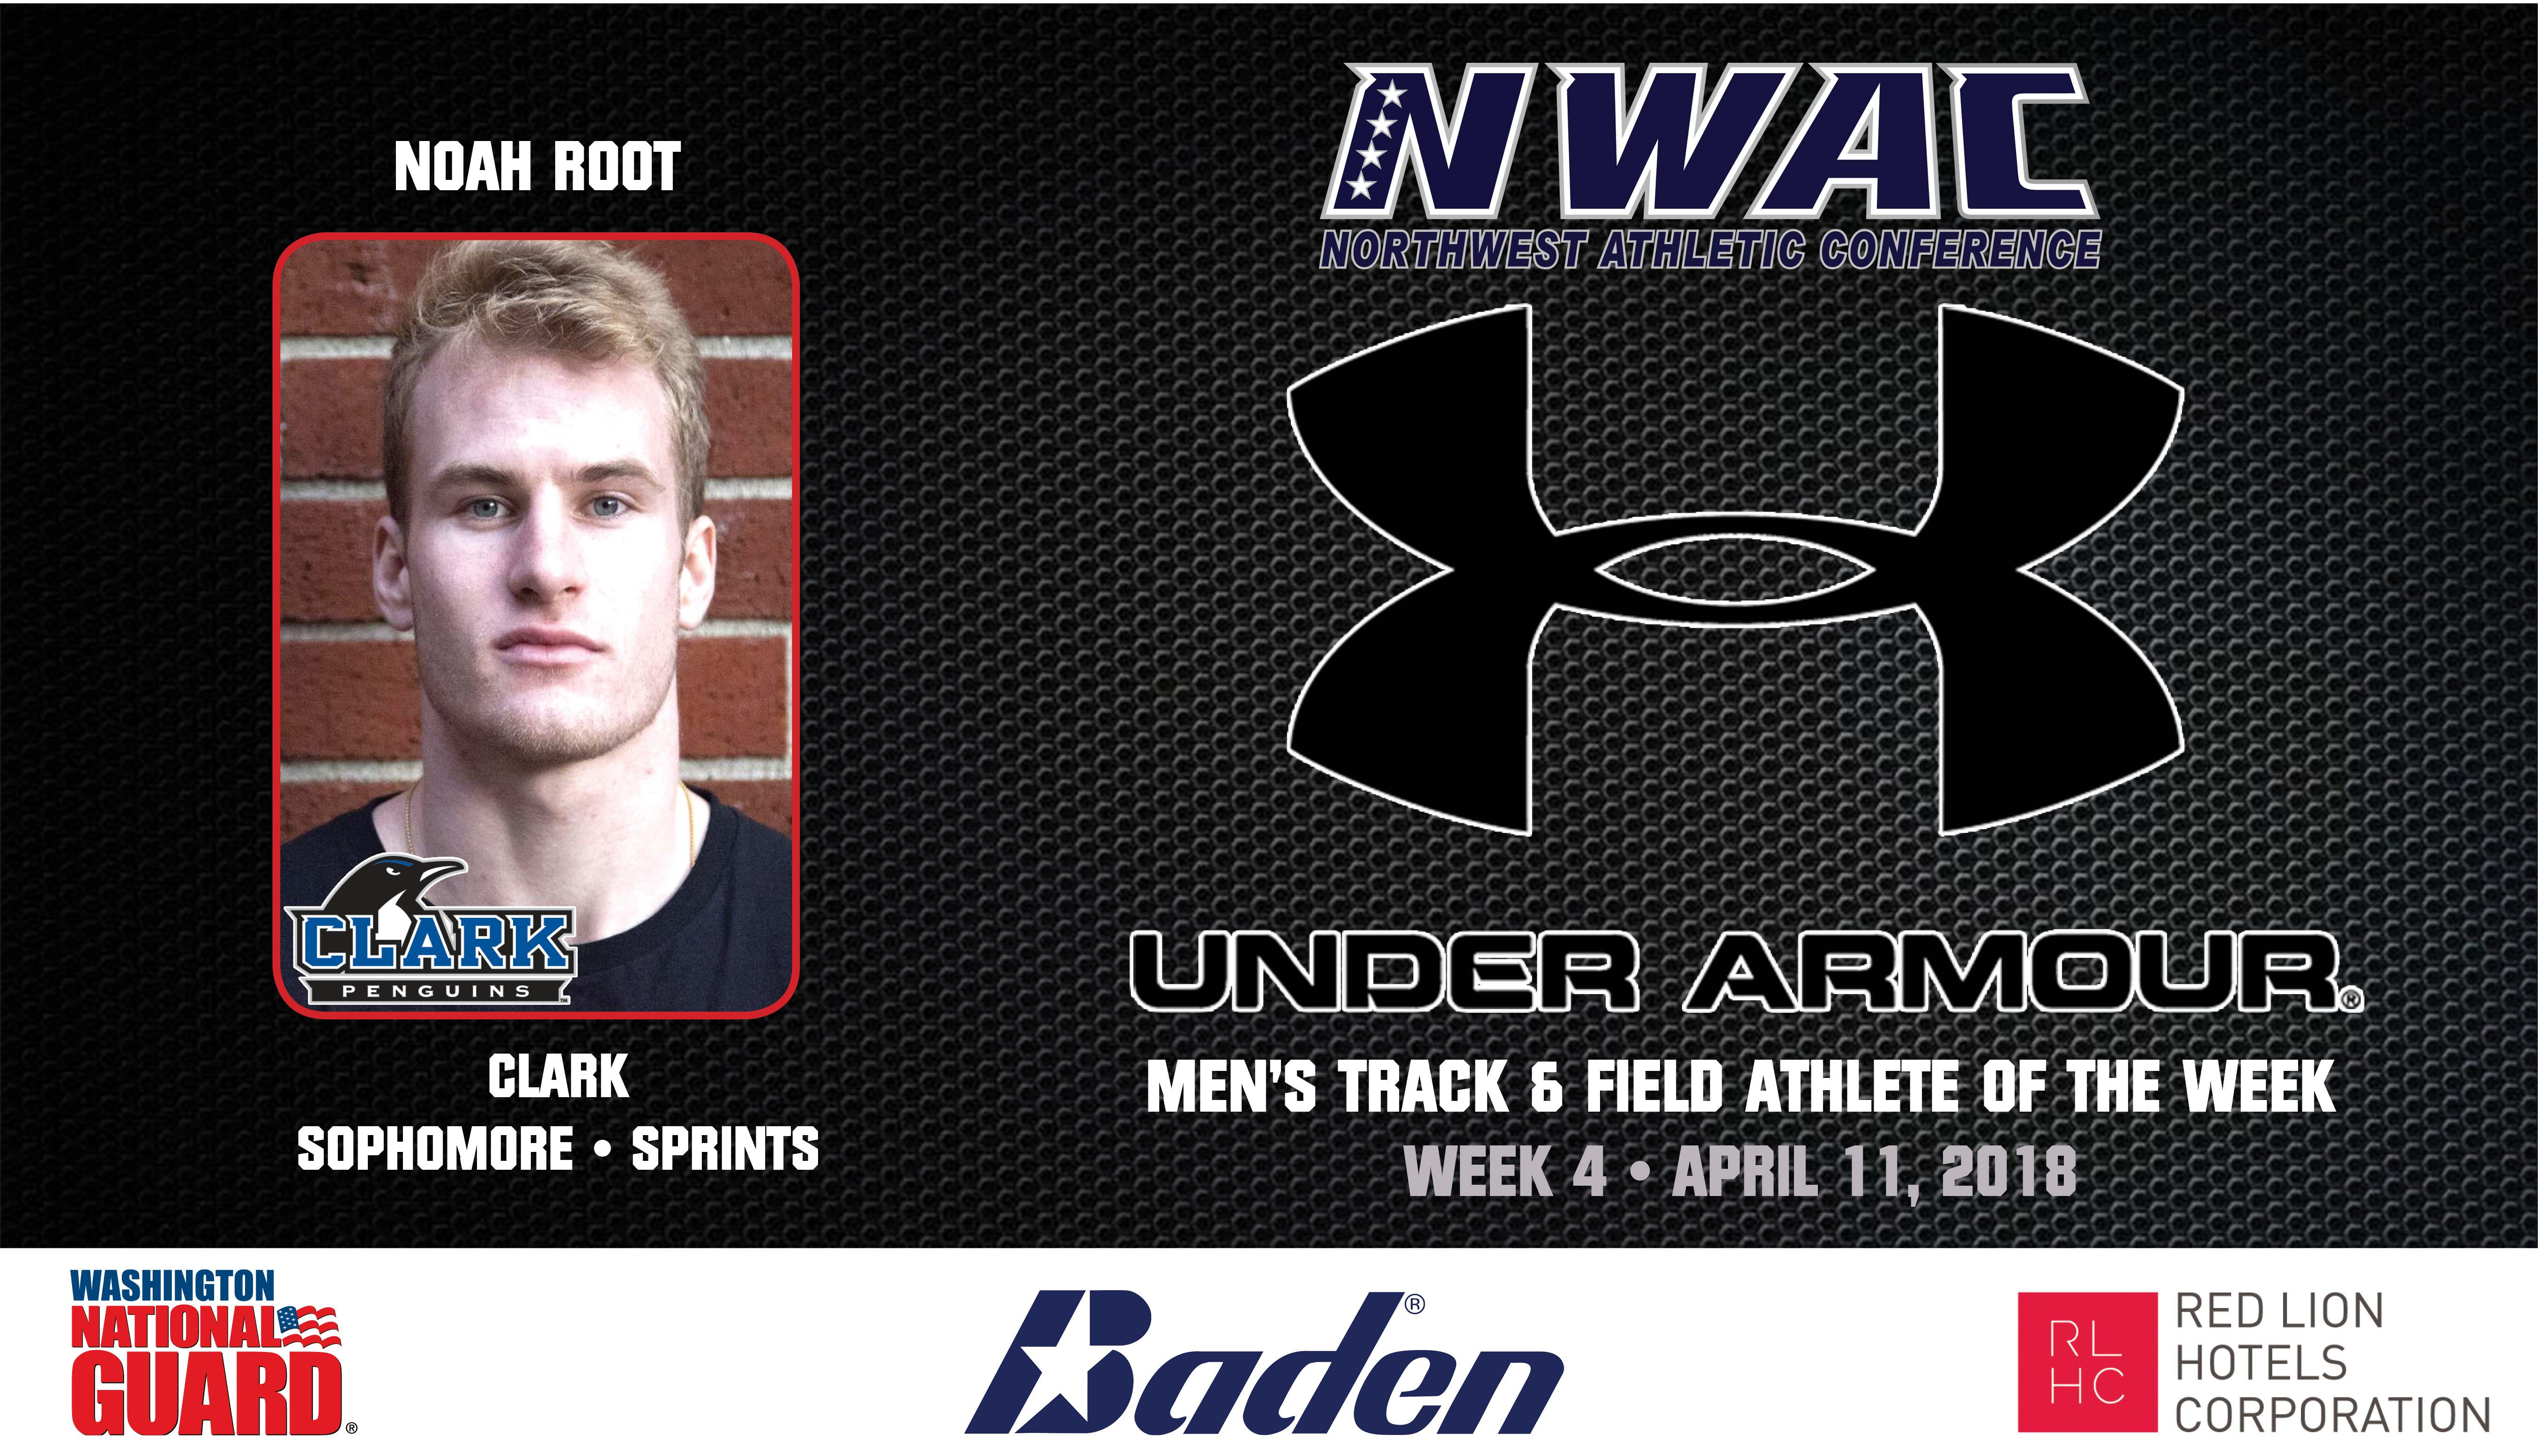 Noah Root Under Armour image